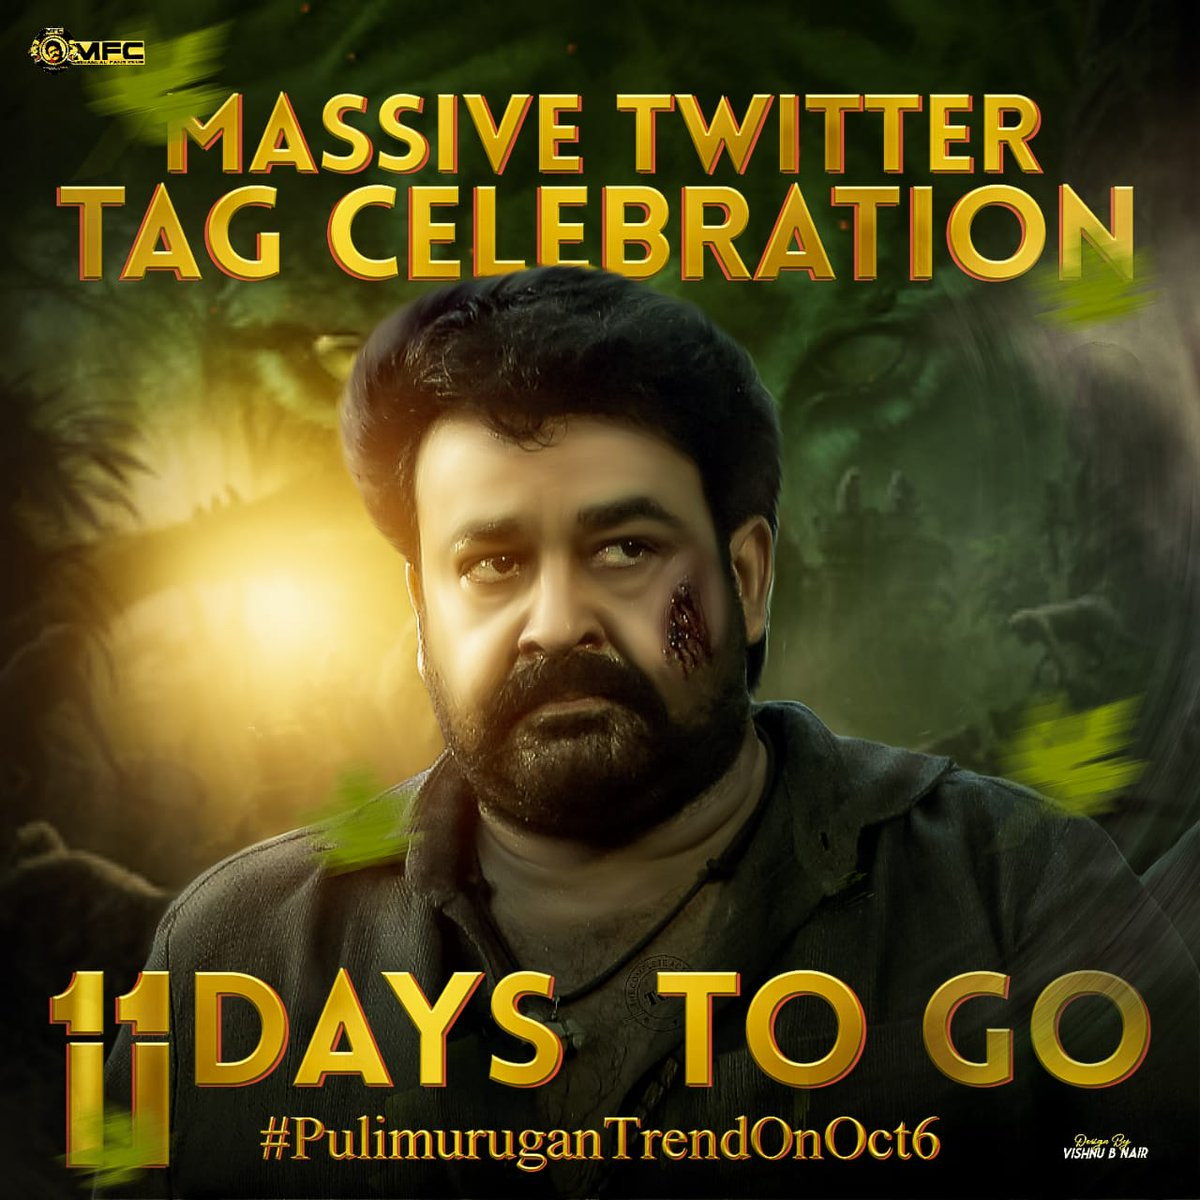 _11 Days to go puliyoor Hunt_✊🏻🔥🐅  _Get Ready For The biggest Tag Celebration of Mollywood 🔥♥️_  #PulimuruganTrendOnOct6   @Mohanlal #Mohanlal #Lalettan #Drishyam2 https://t.co/BcmCIzDcqW